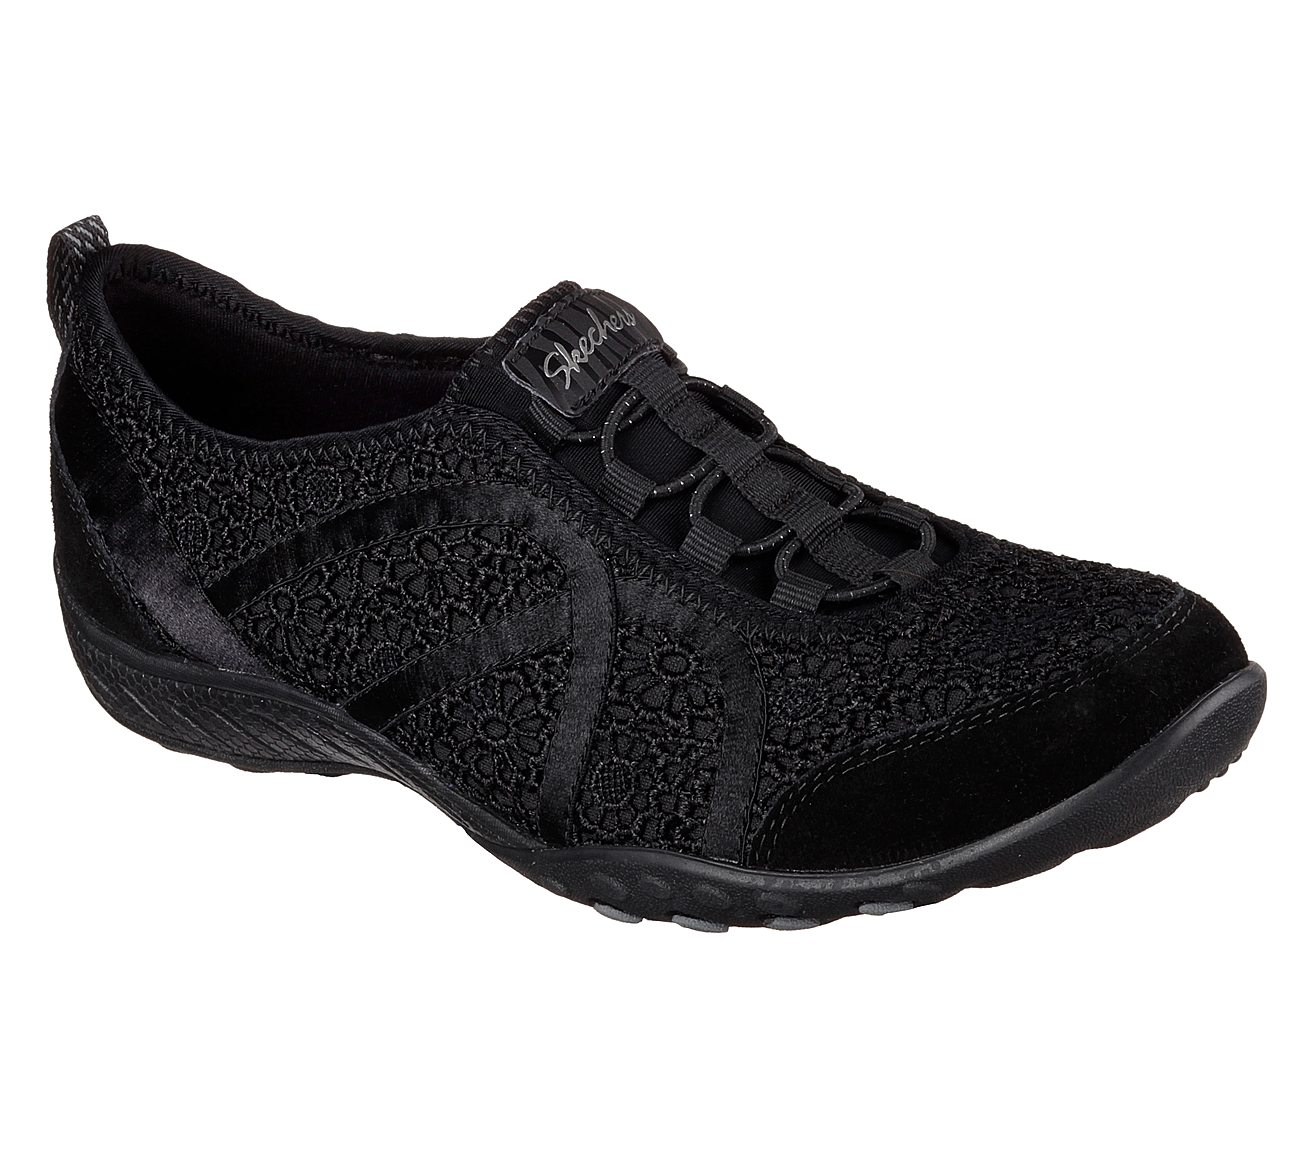 261058d32204 Buy SKECHERS Relaxed Fit  Breathe Easy - Meadows Active Shoes only ...